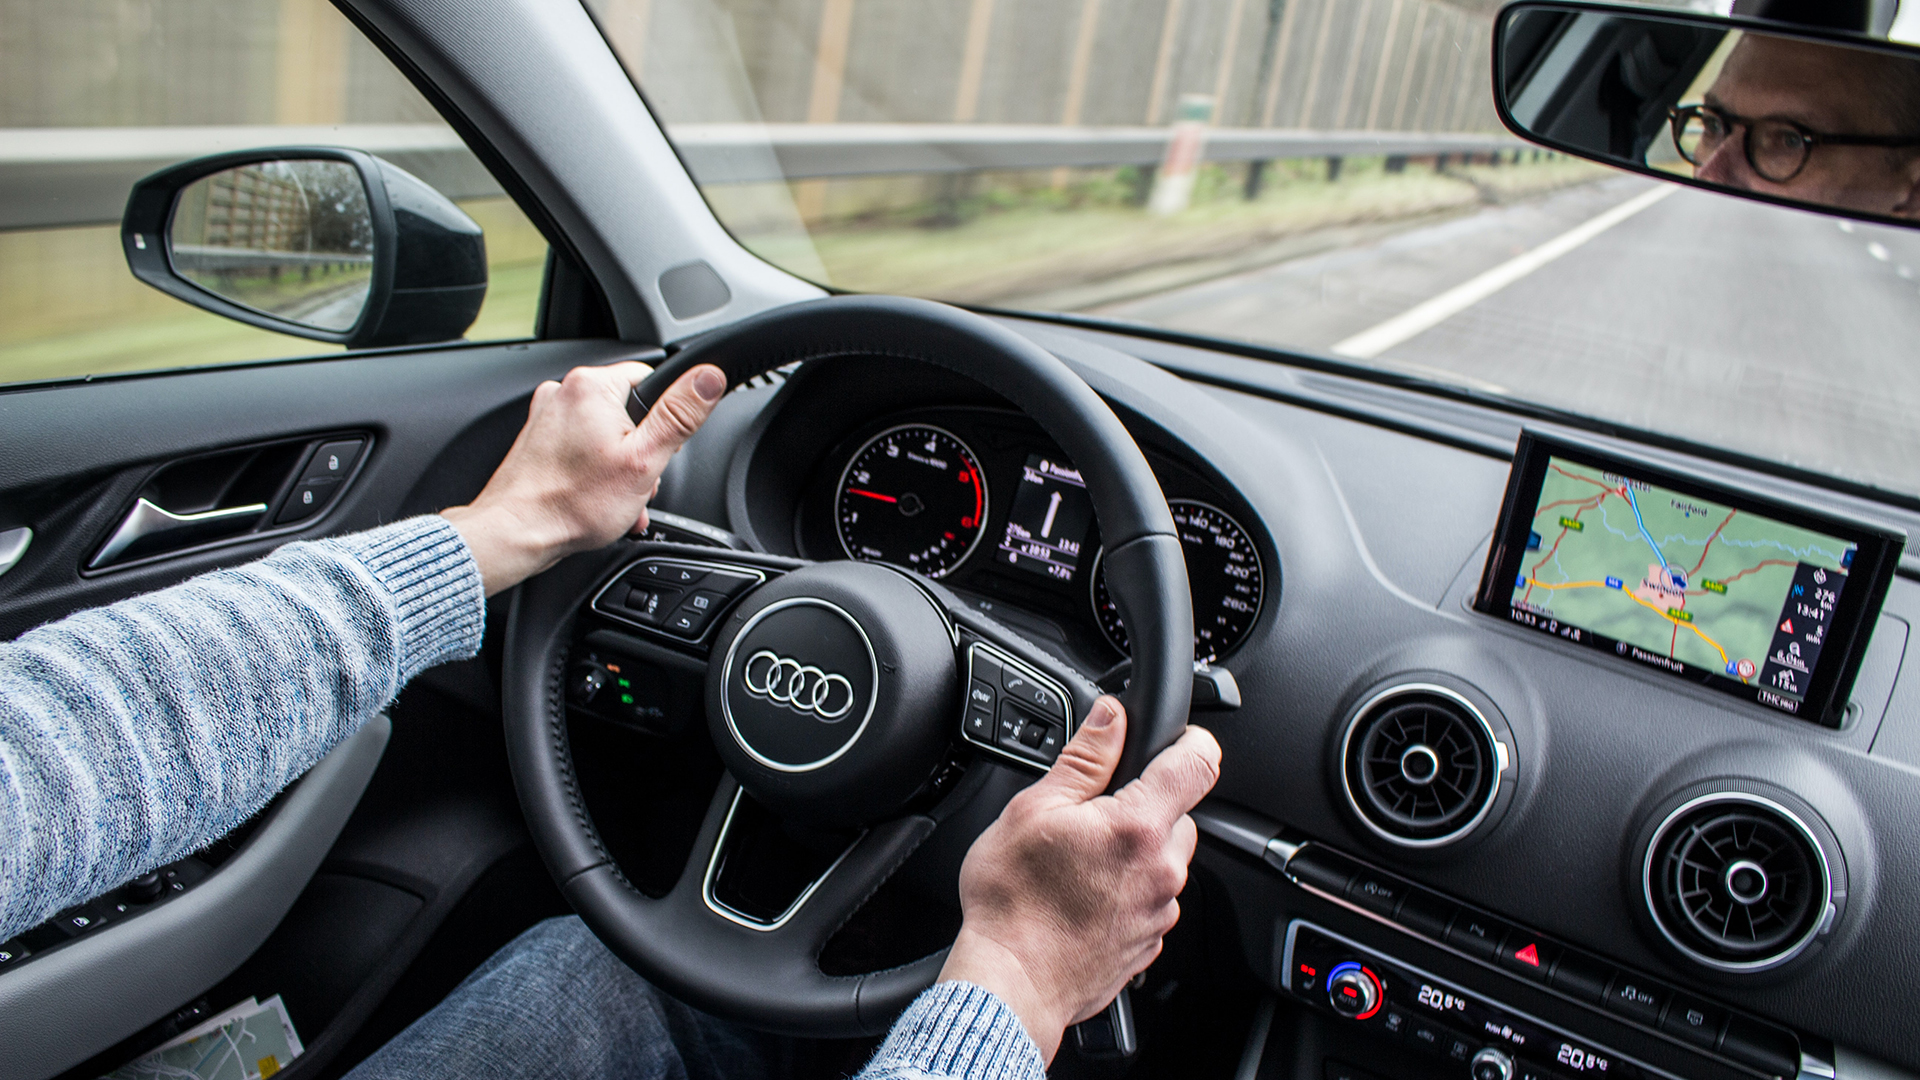 A middle aged man in a sweater driving an Audi in what looks like a moderately cloudy place.